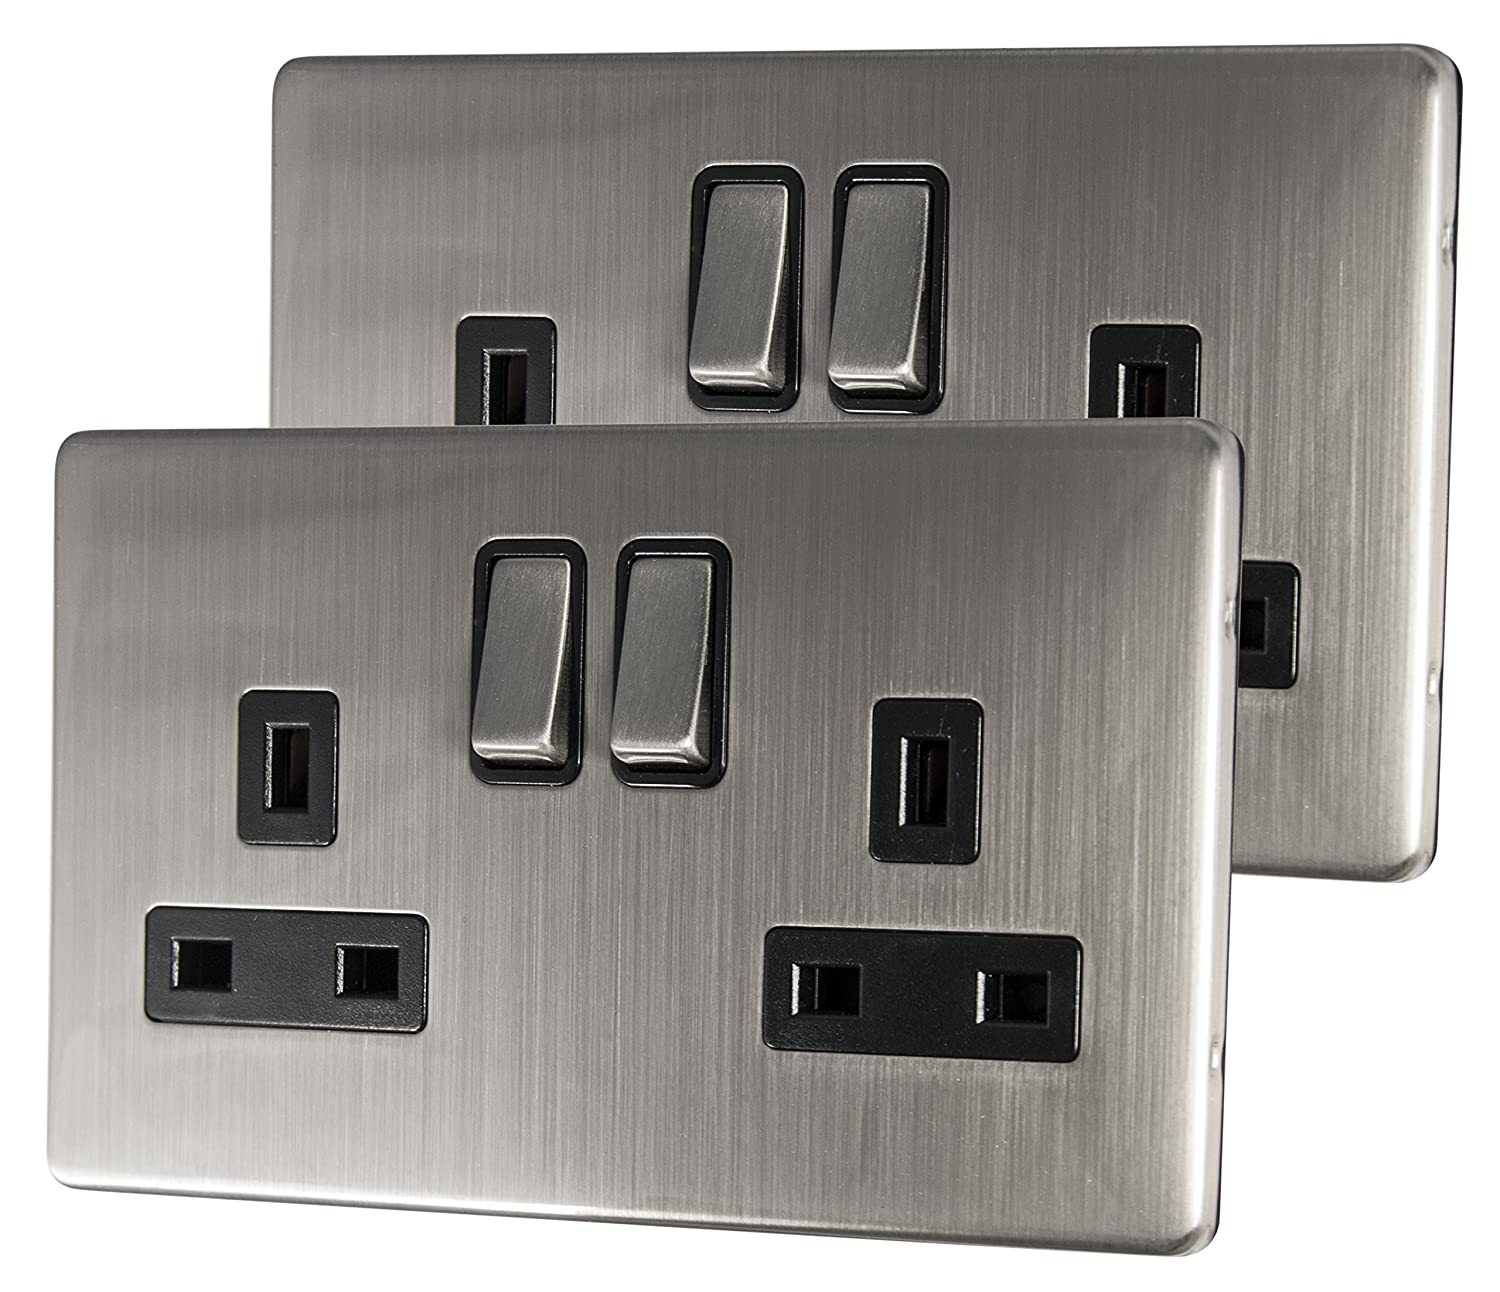 2 x Double Wall Socket Switched Gloss Brushed Chrome 2 Gang Screwless 13a Double Pole N410DME Long Life Lamp Company